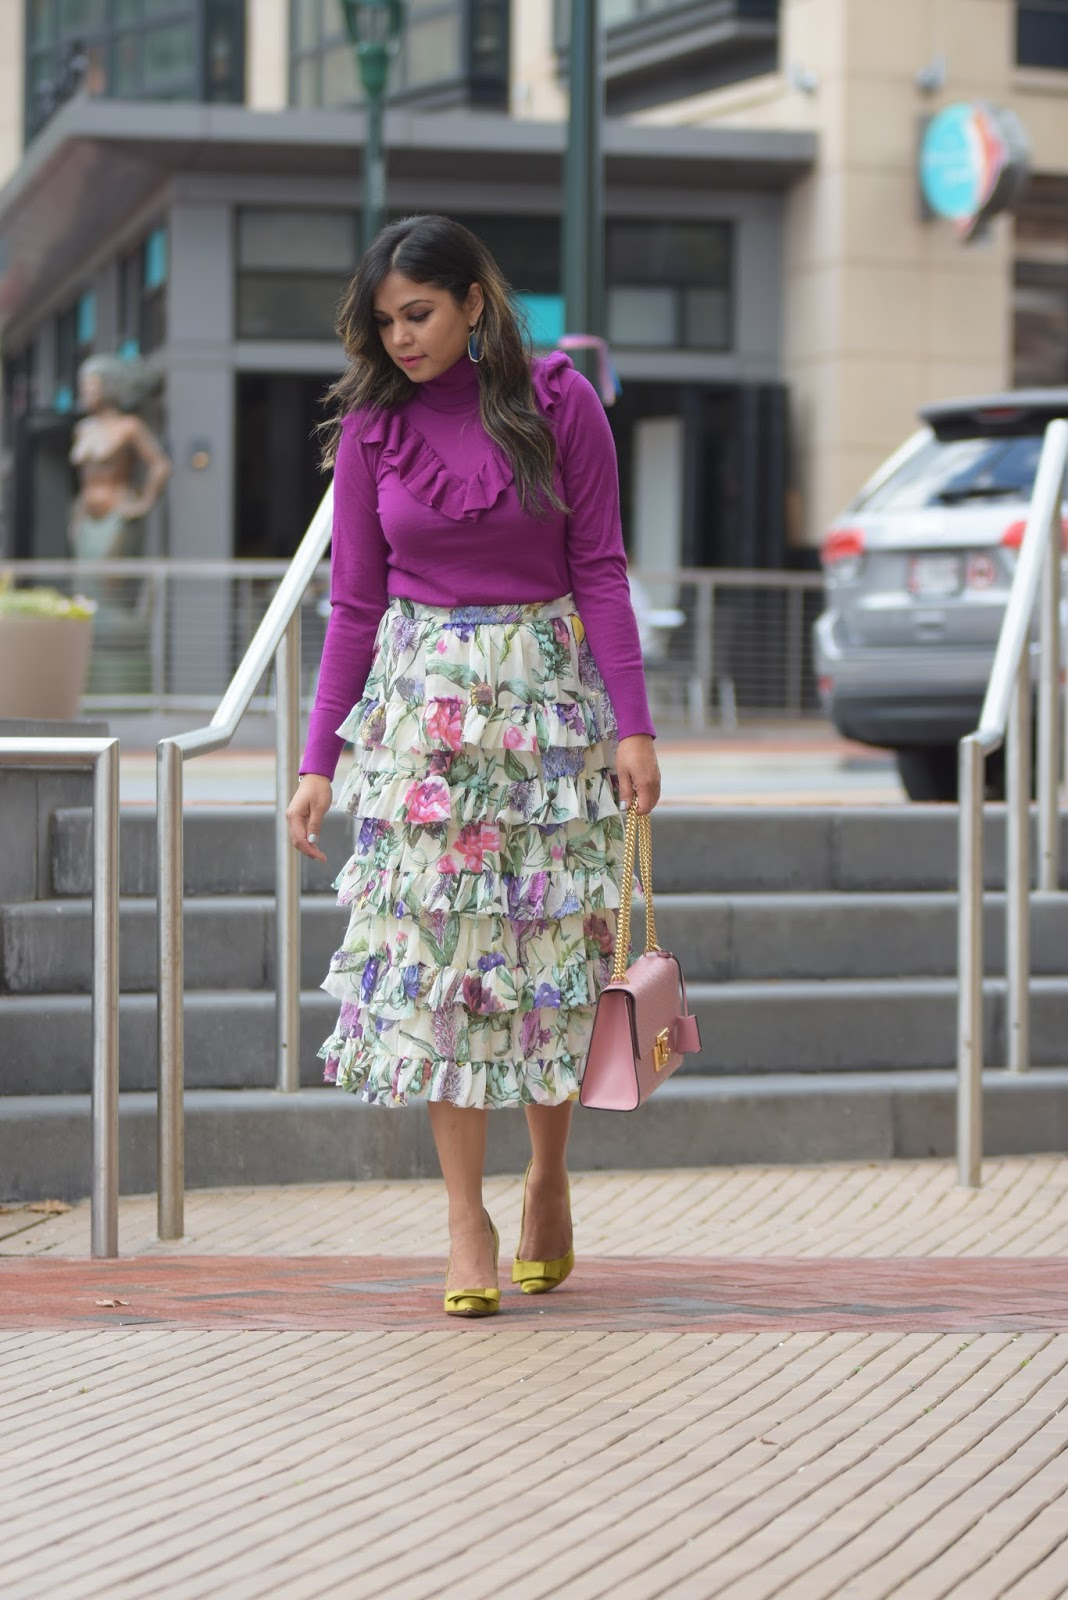 how to wwesr ruffles if you have bigger busts, ruffles in winter, j crew pink ruffle sweater, ruffled skirt , floral skirt, green satin pumps, fall fashion , myriad musings